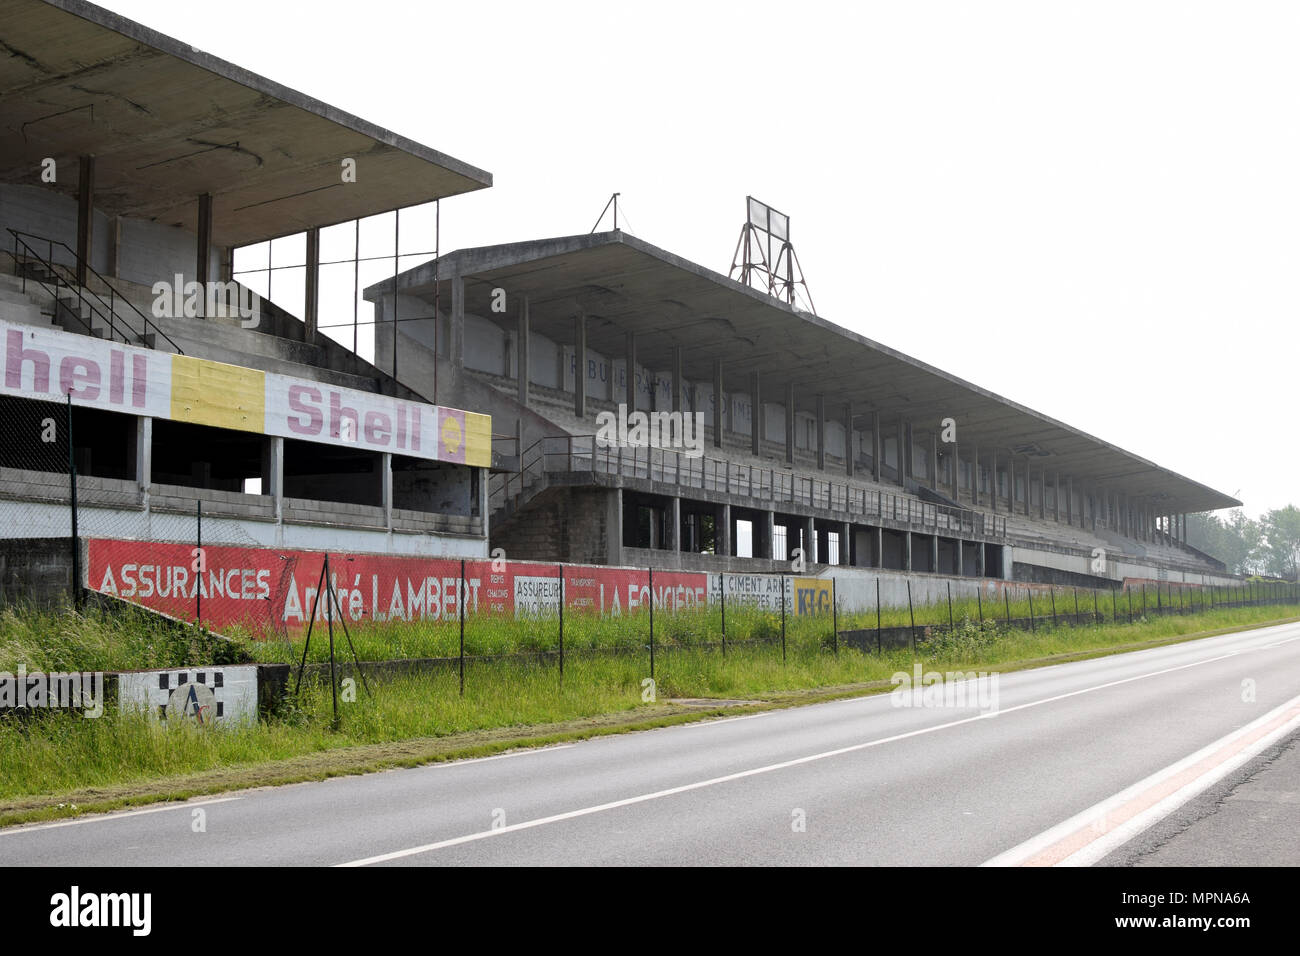 GUEUX, FRANCE - May 15, 2018: Historic Reims-Gueux circuit near Reims. Stock Photo